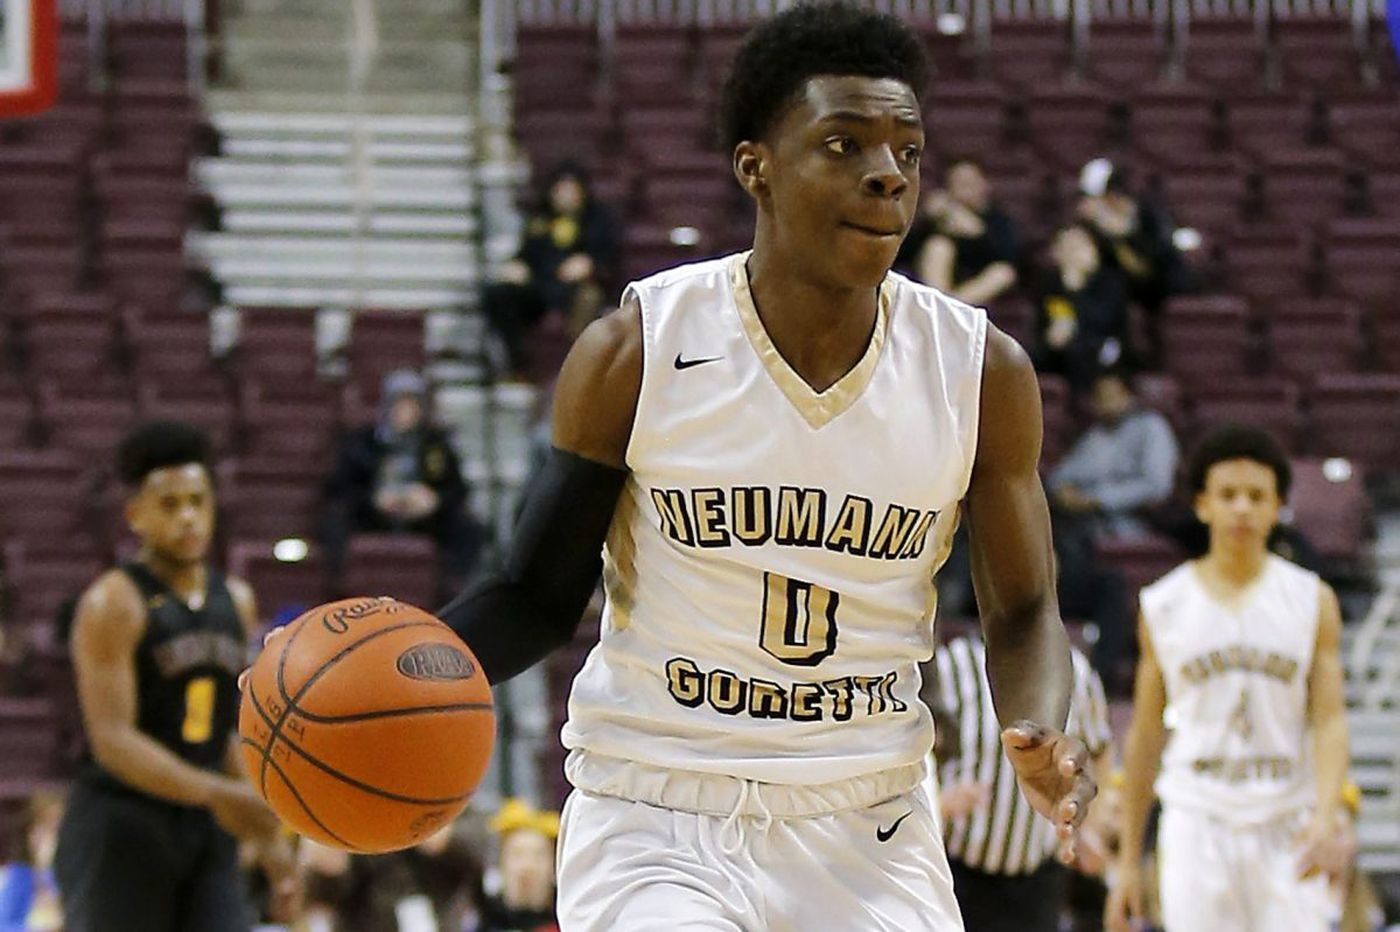 Chris Ings, Marcus Littles lead Neumann-Goretti past Roman